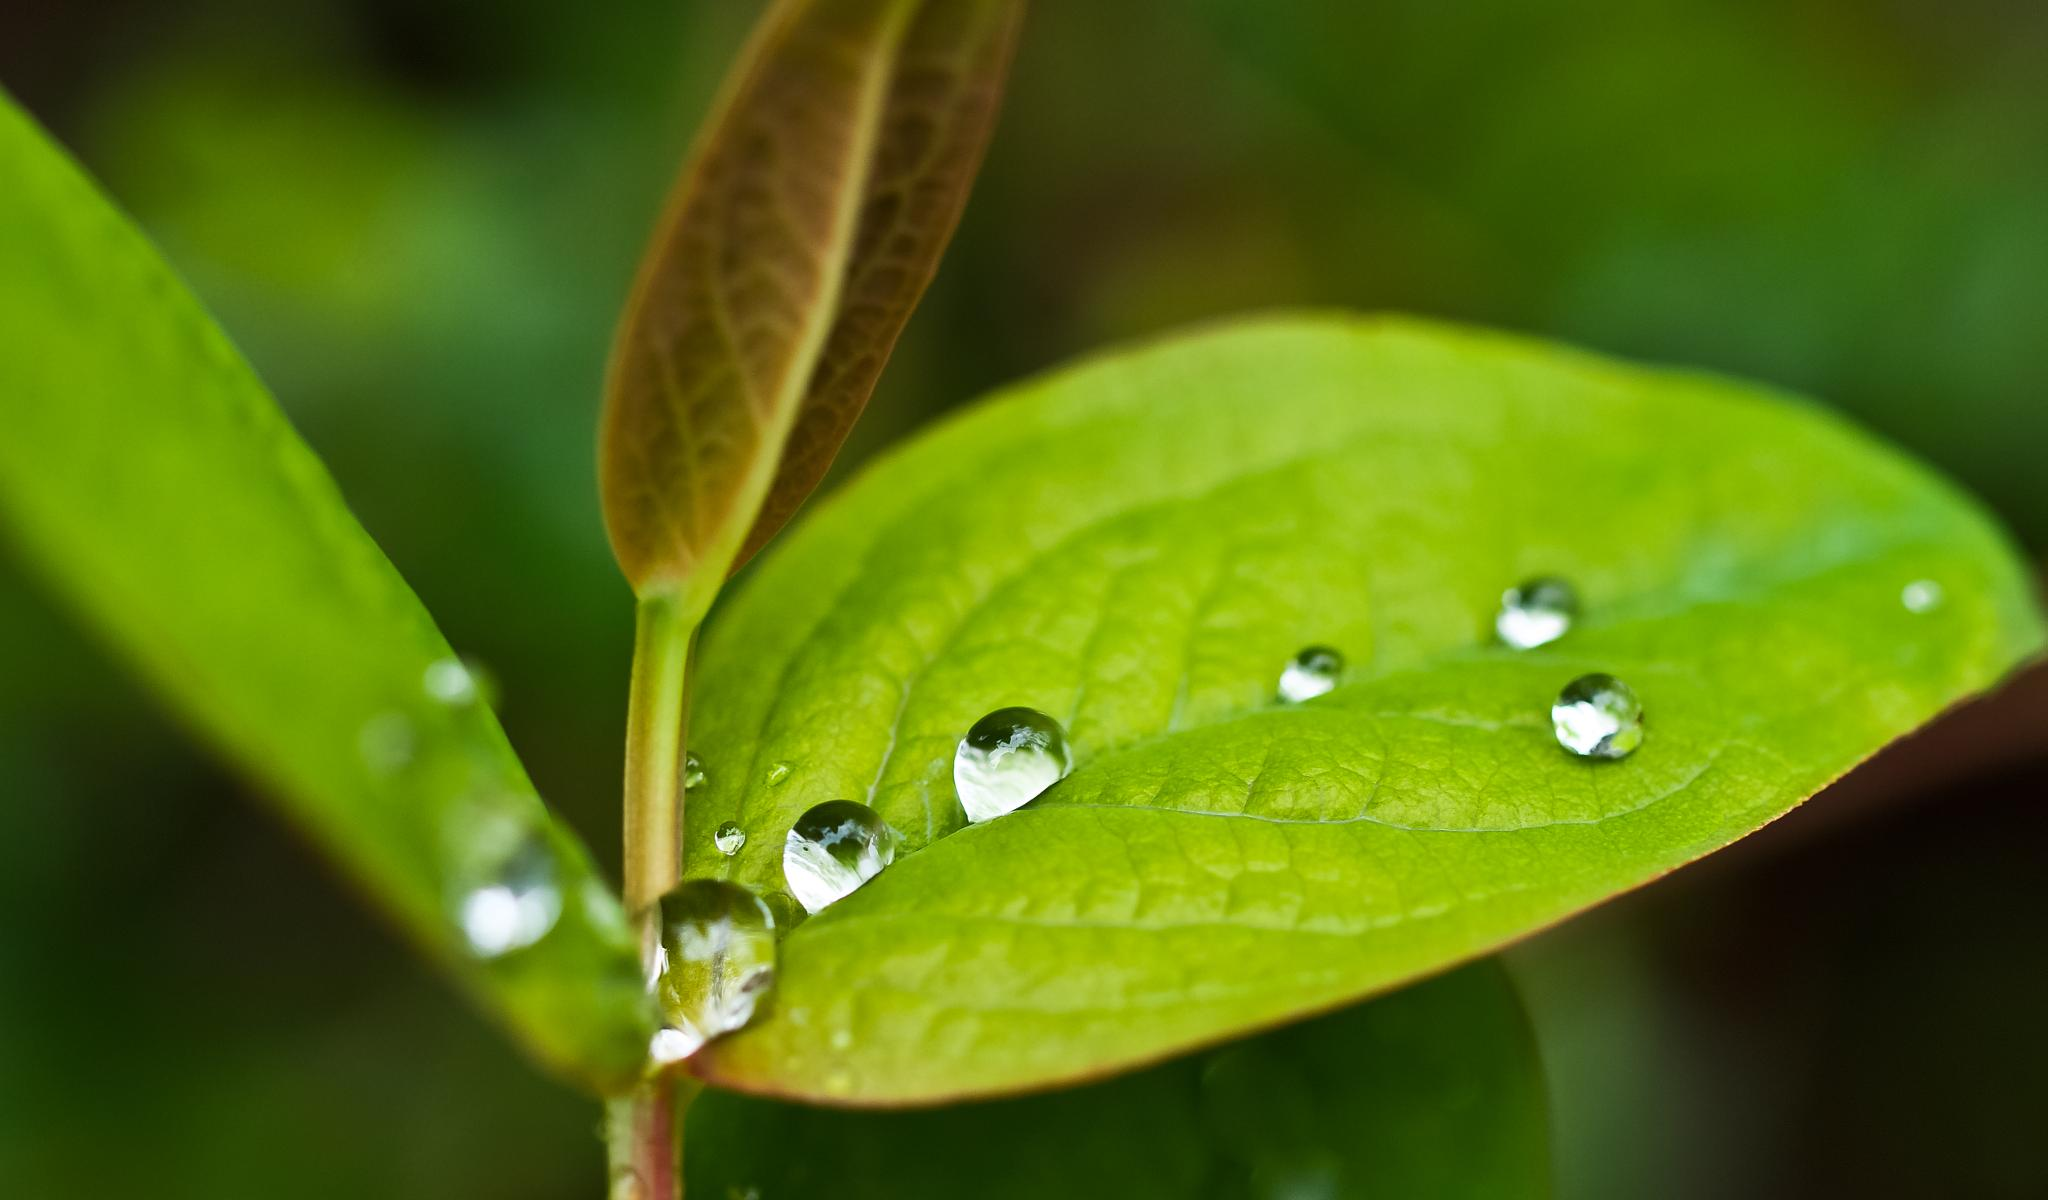 Droplets by Peter Edwardo Vicente.